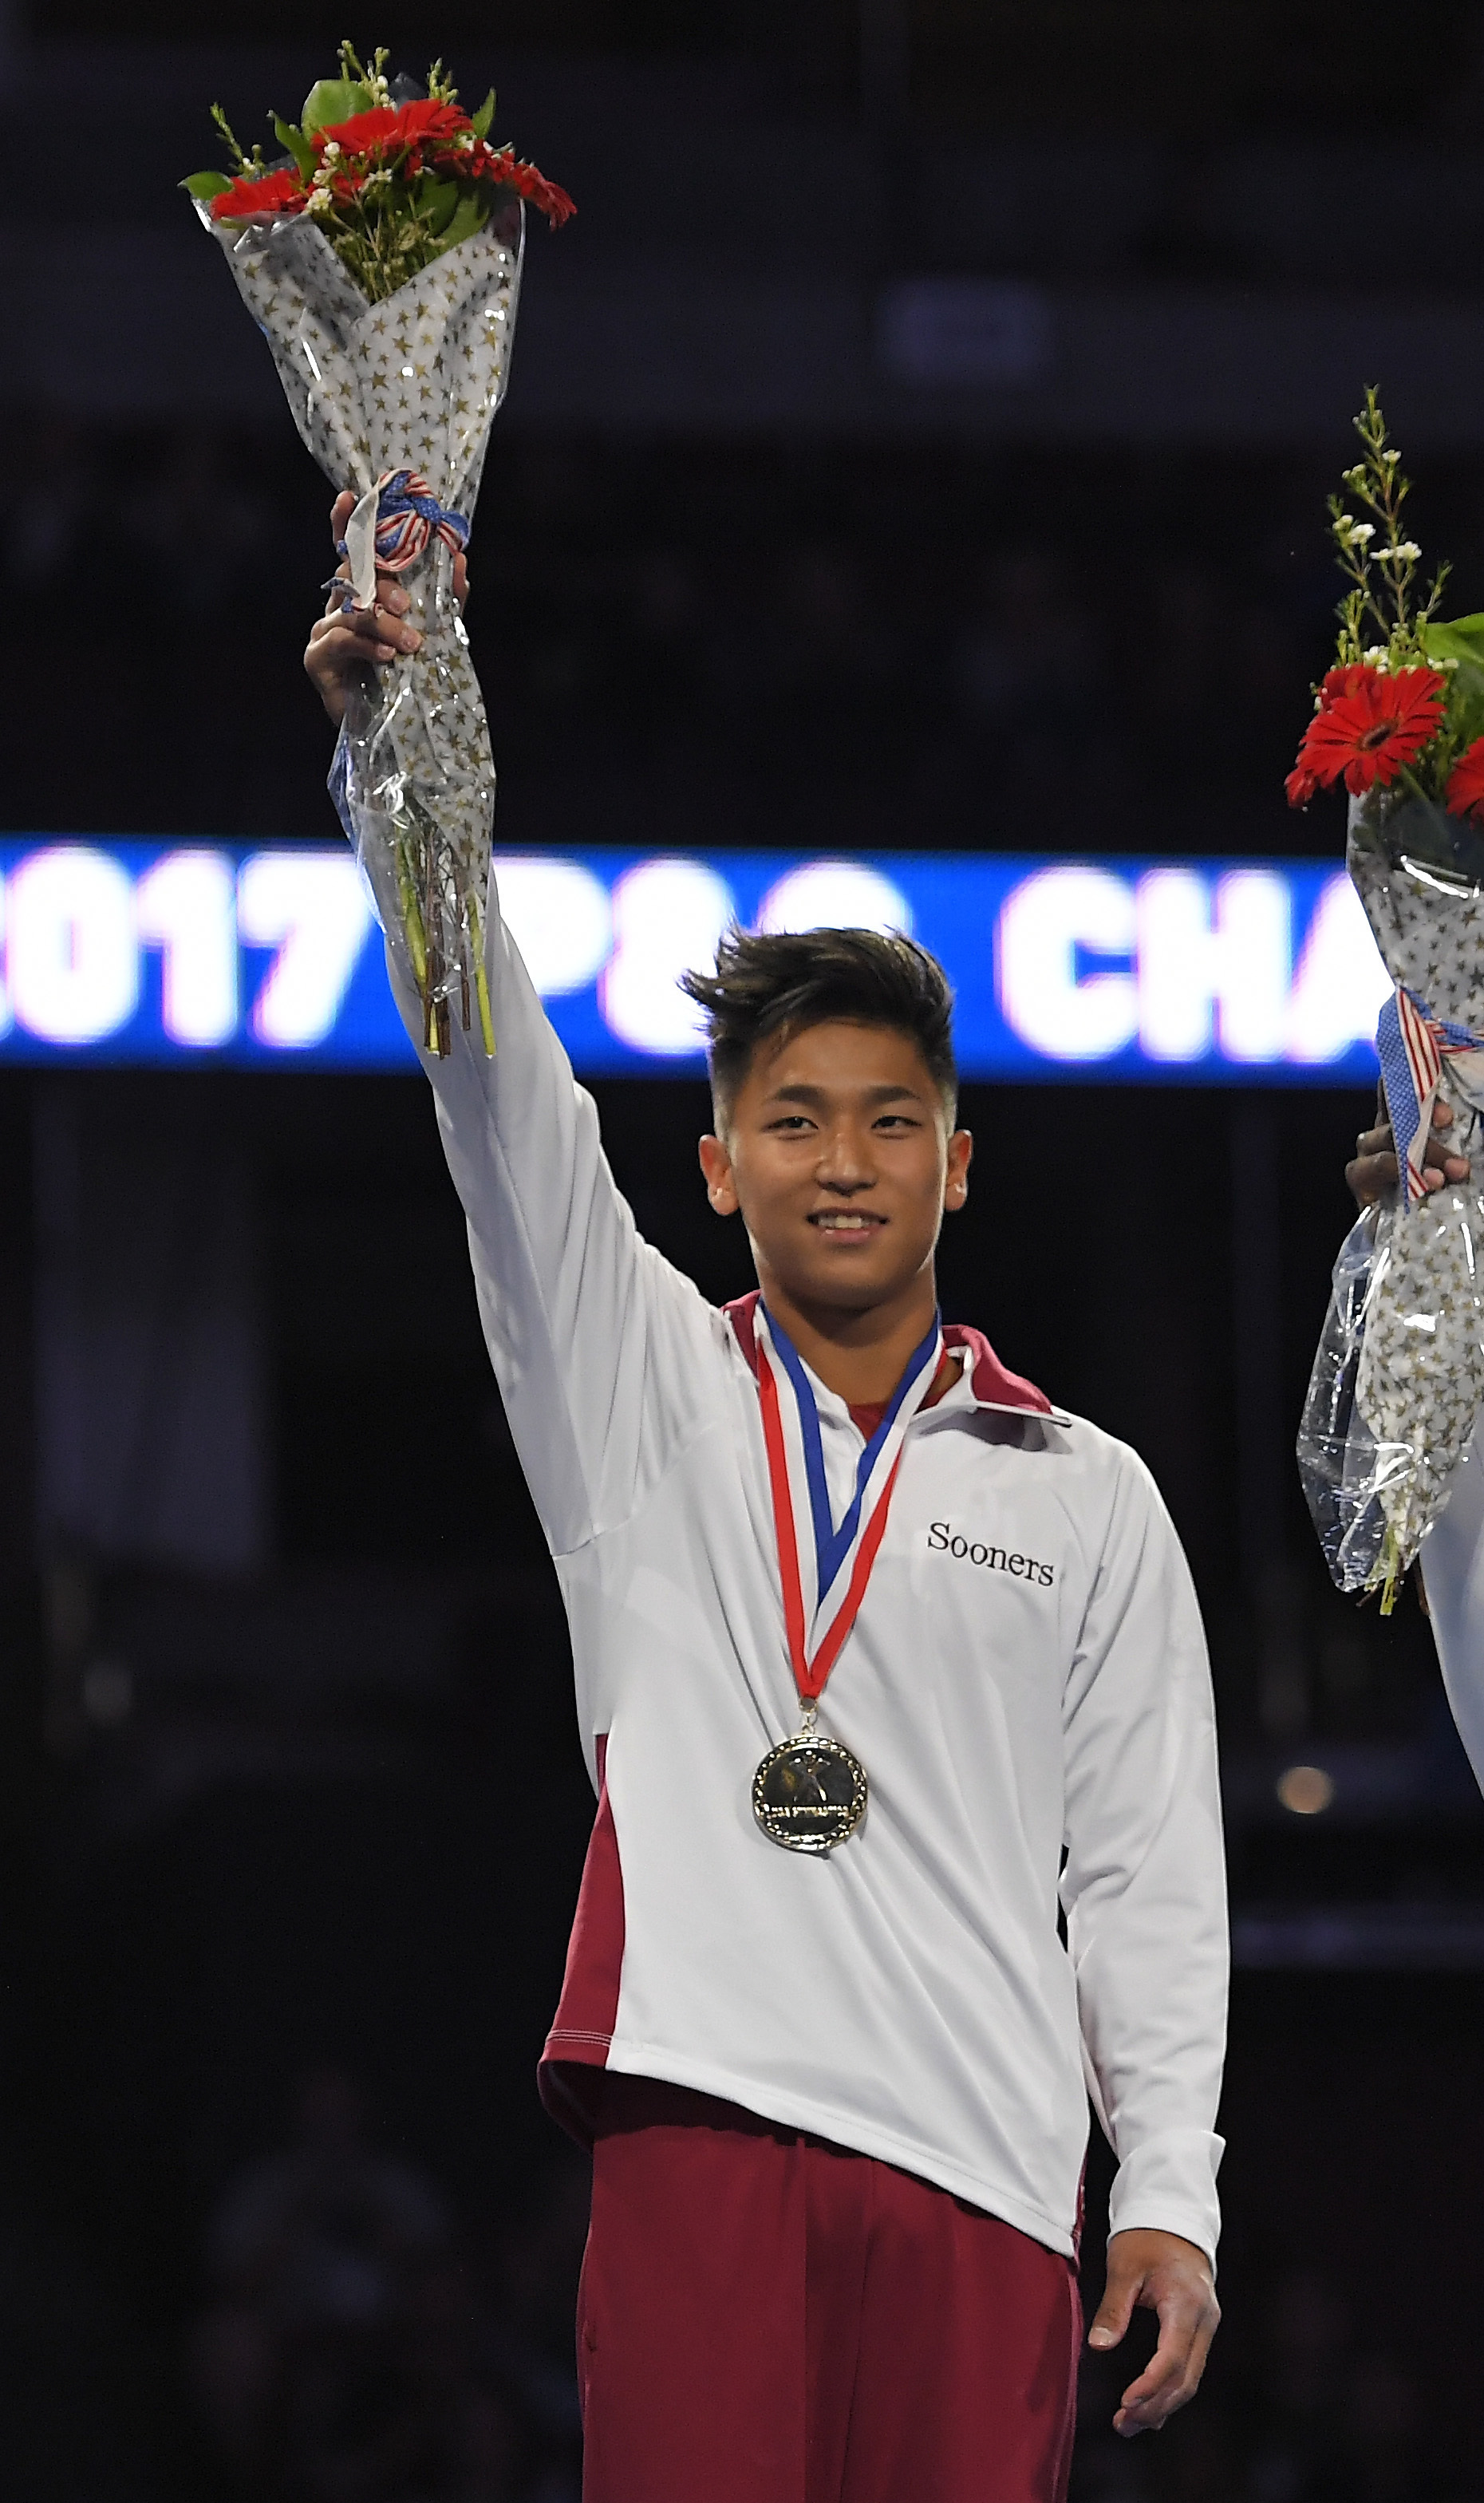 Yul Moldauer waves to fans after winning the men's all-around at the U.S. gymnastics championships, Saturday, Aug. 19, 2017, in Anaheim, Calif. (AP Photo/Mark J. Terrill)